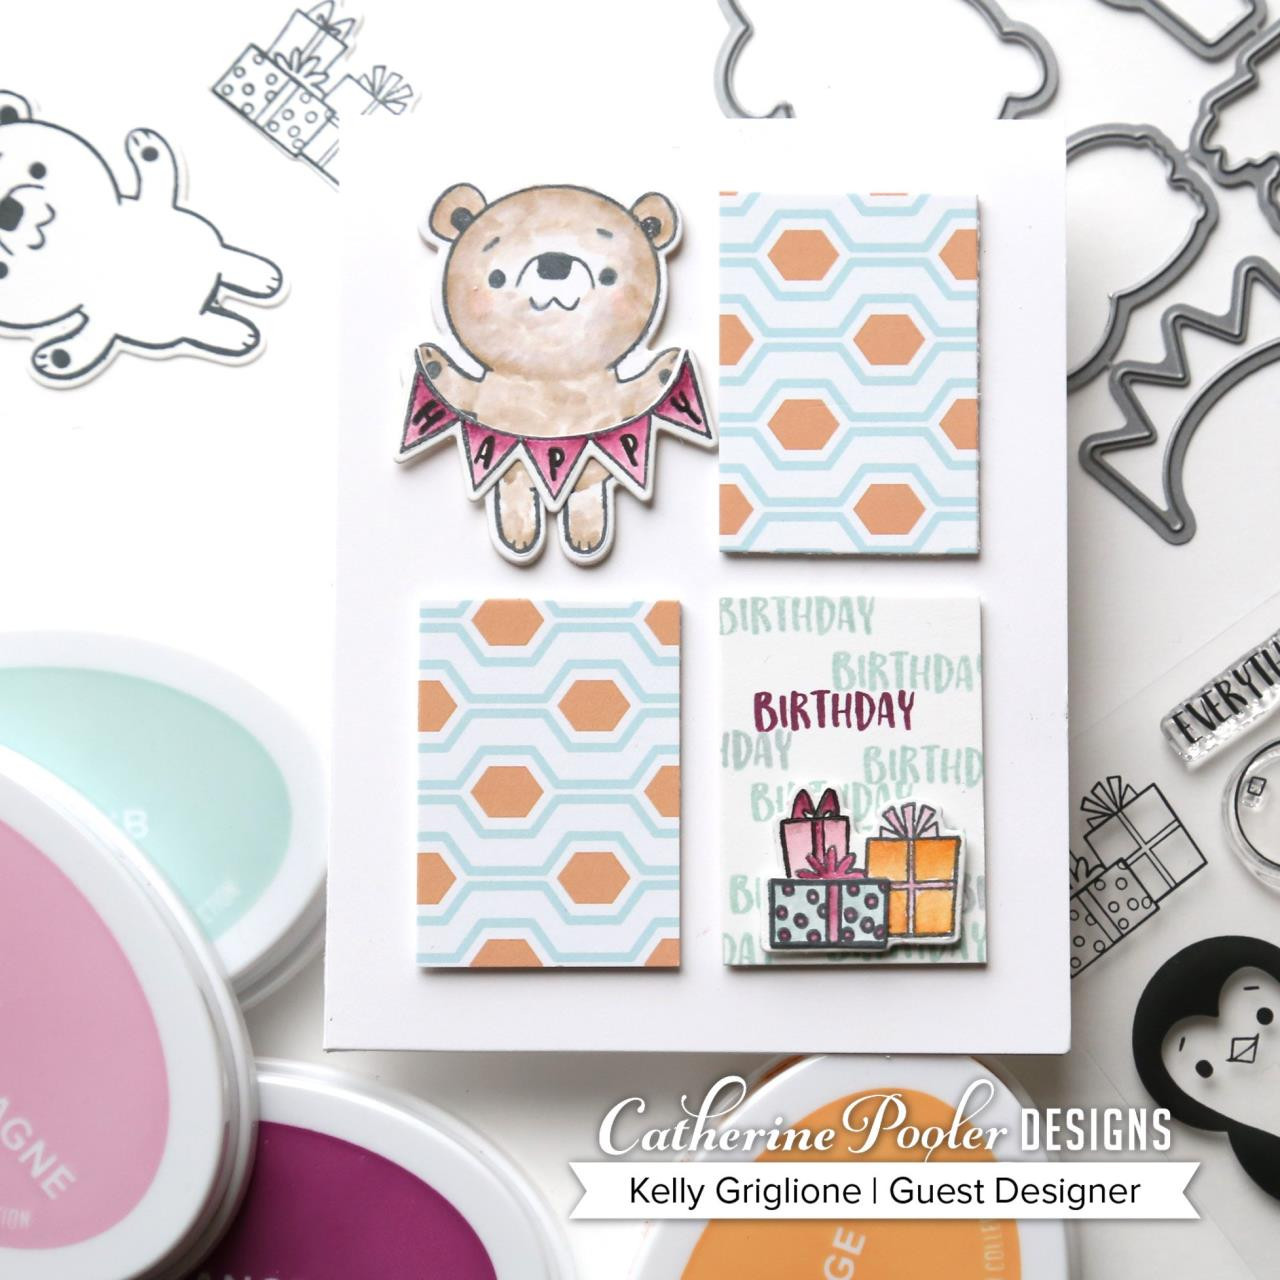 Feeling Chilly, Catherine Pooler Patterned Paper - 819447025220